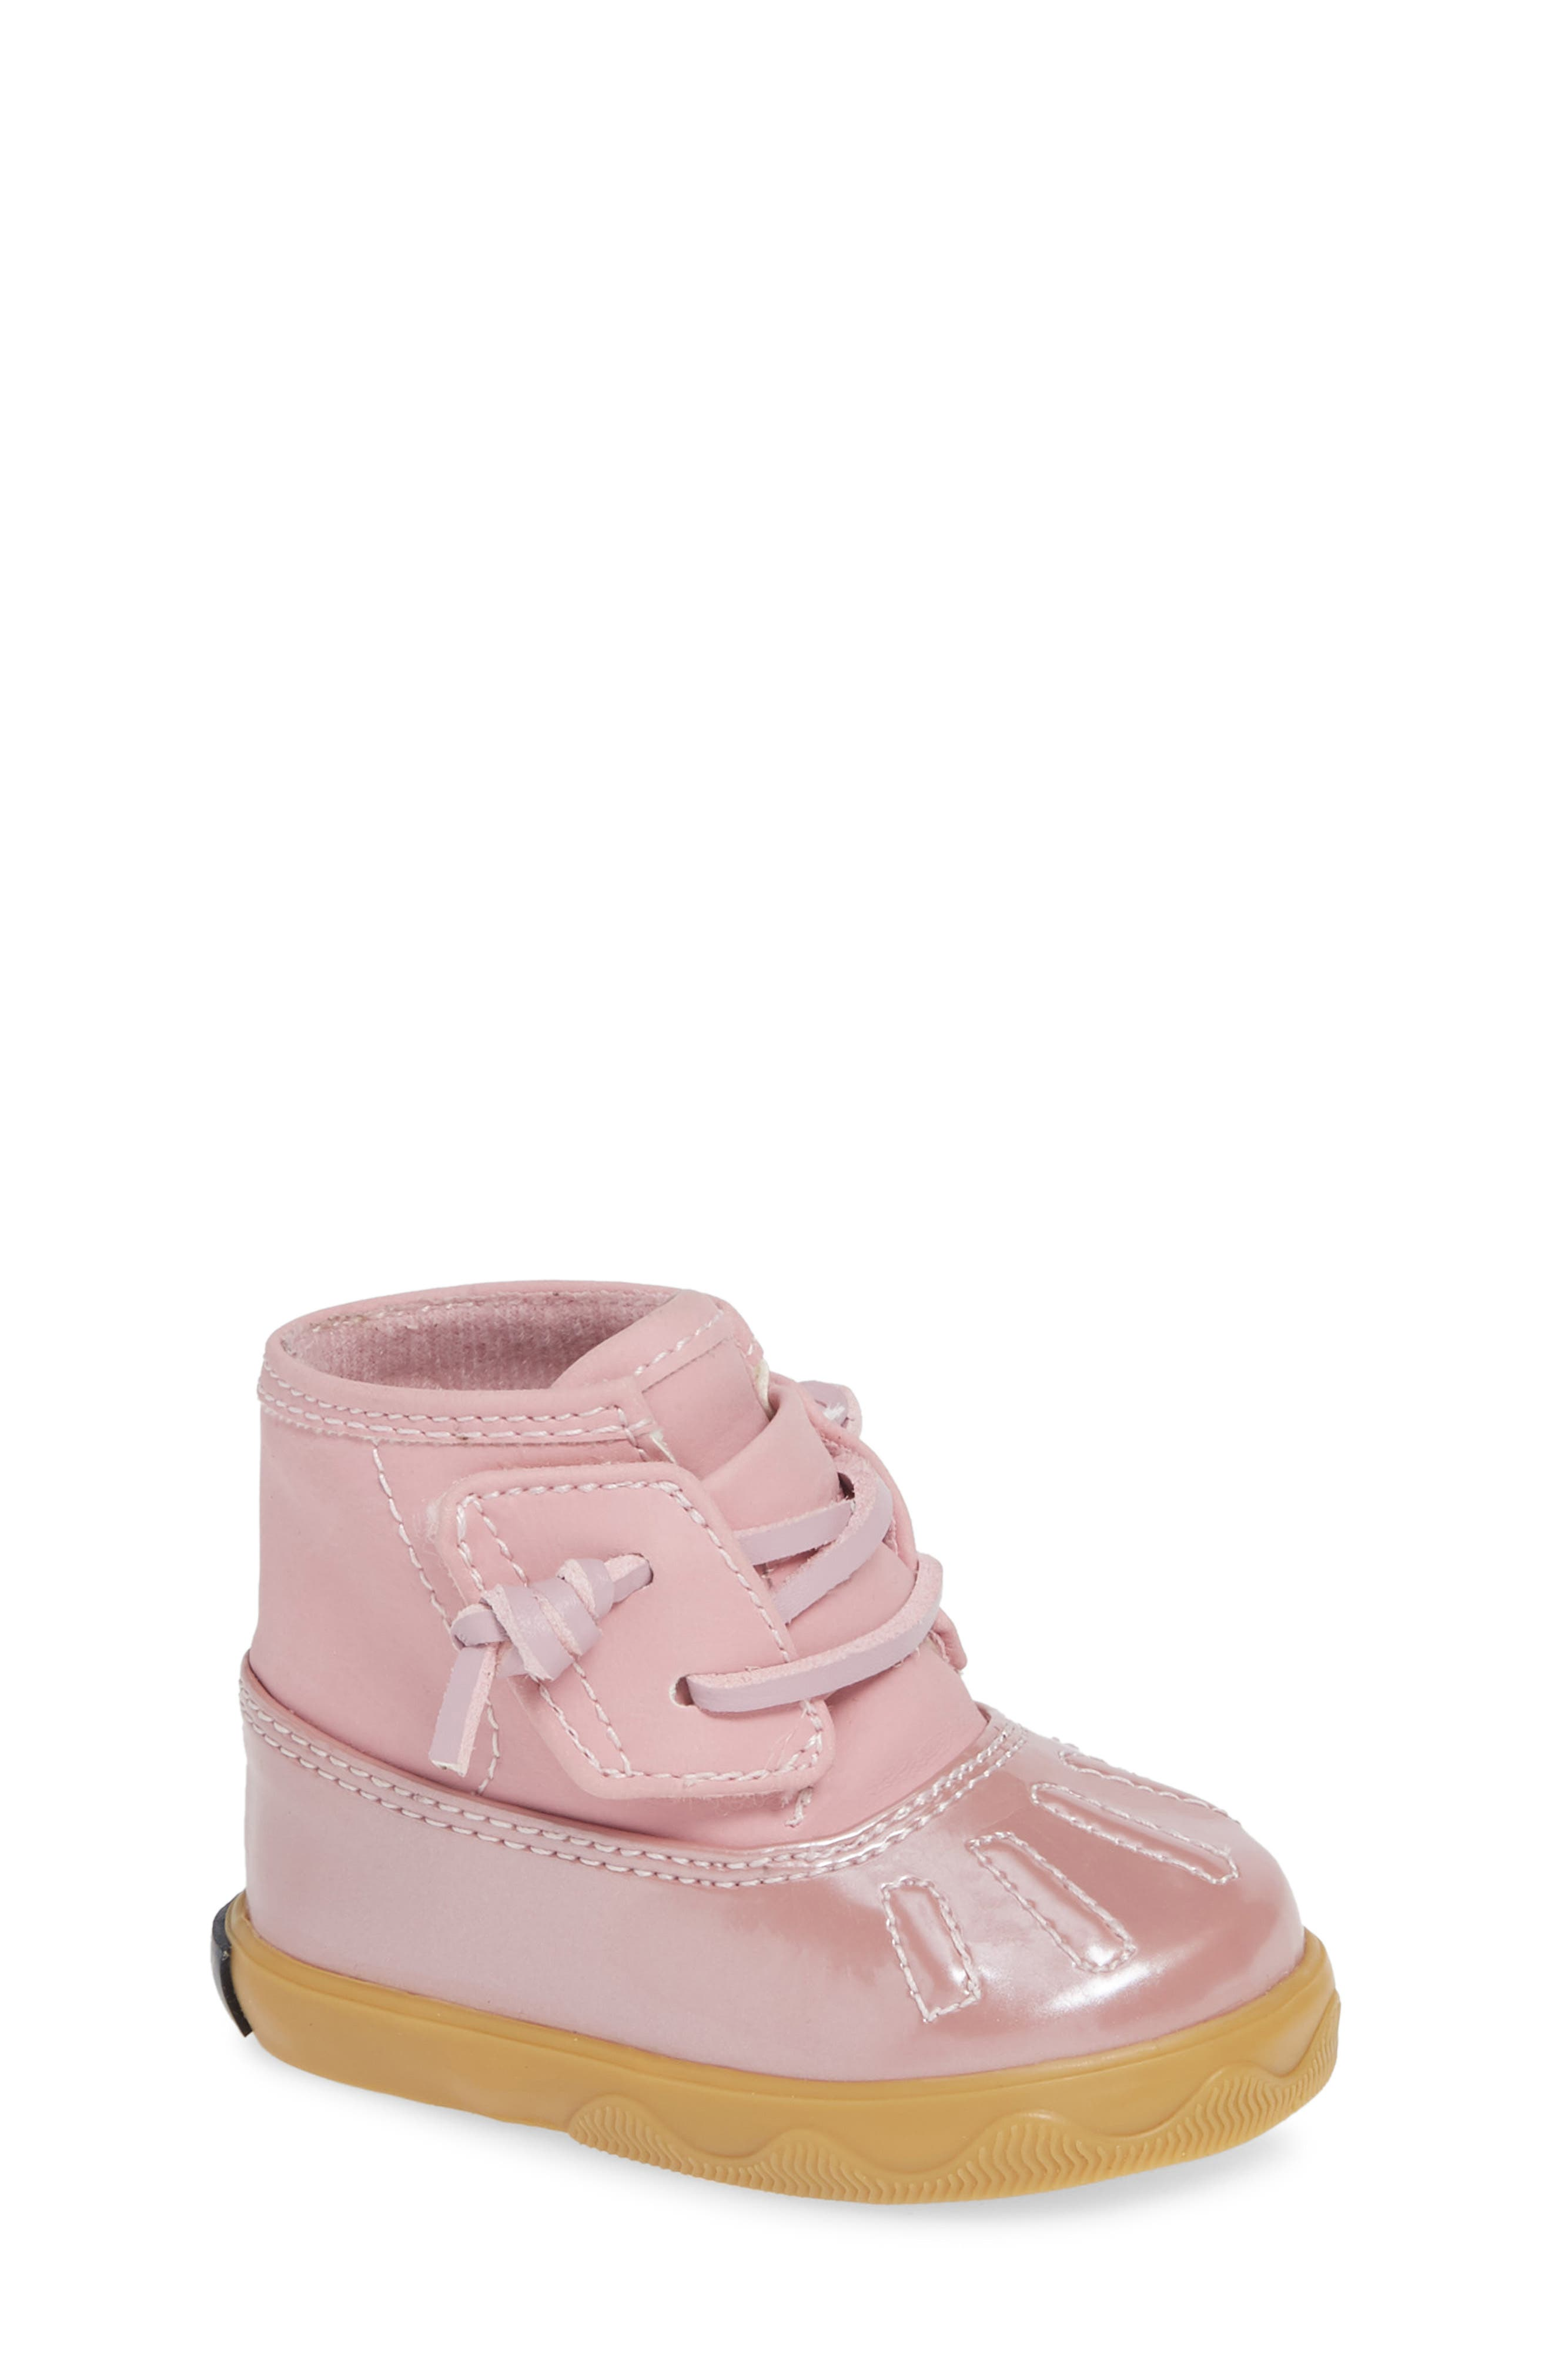 Sperry Icestorm Crib Duck Bootie,                             Main thumbnail 1, color,                             650